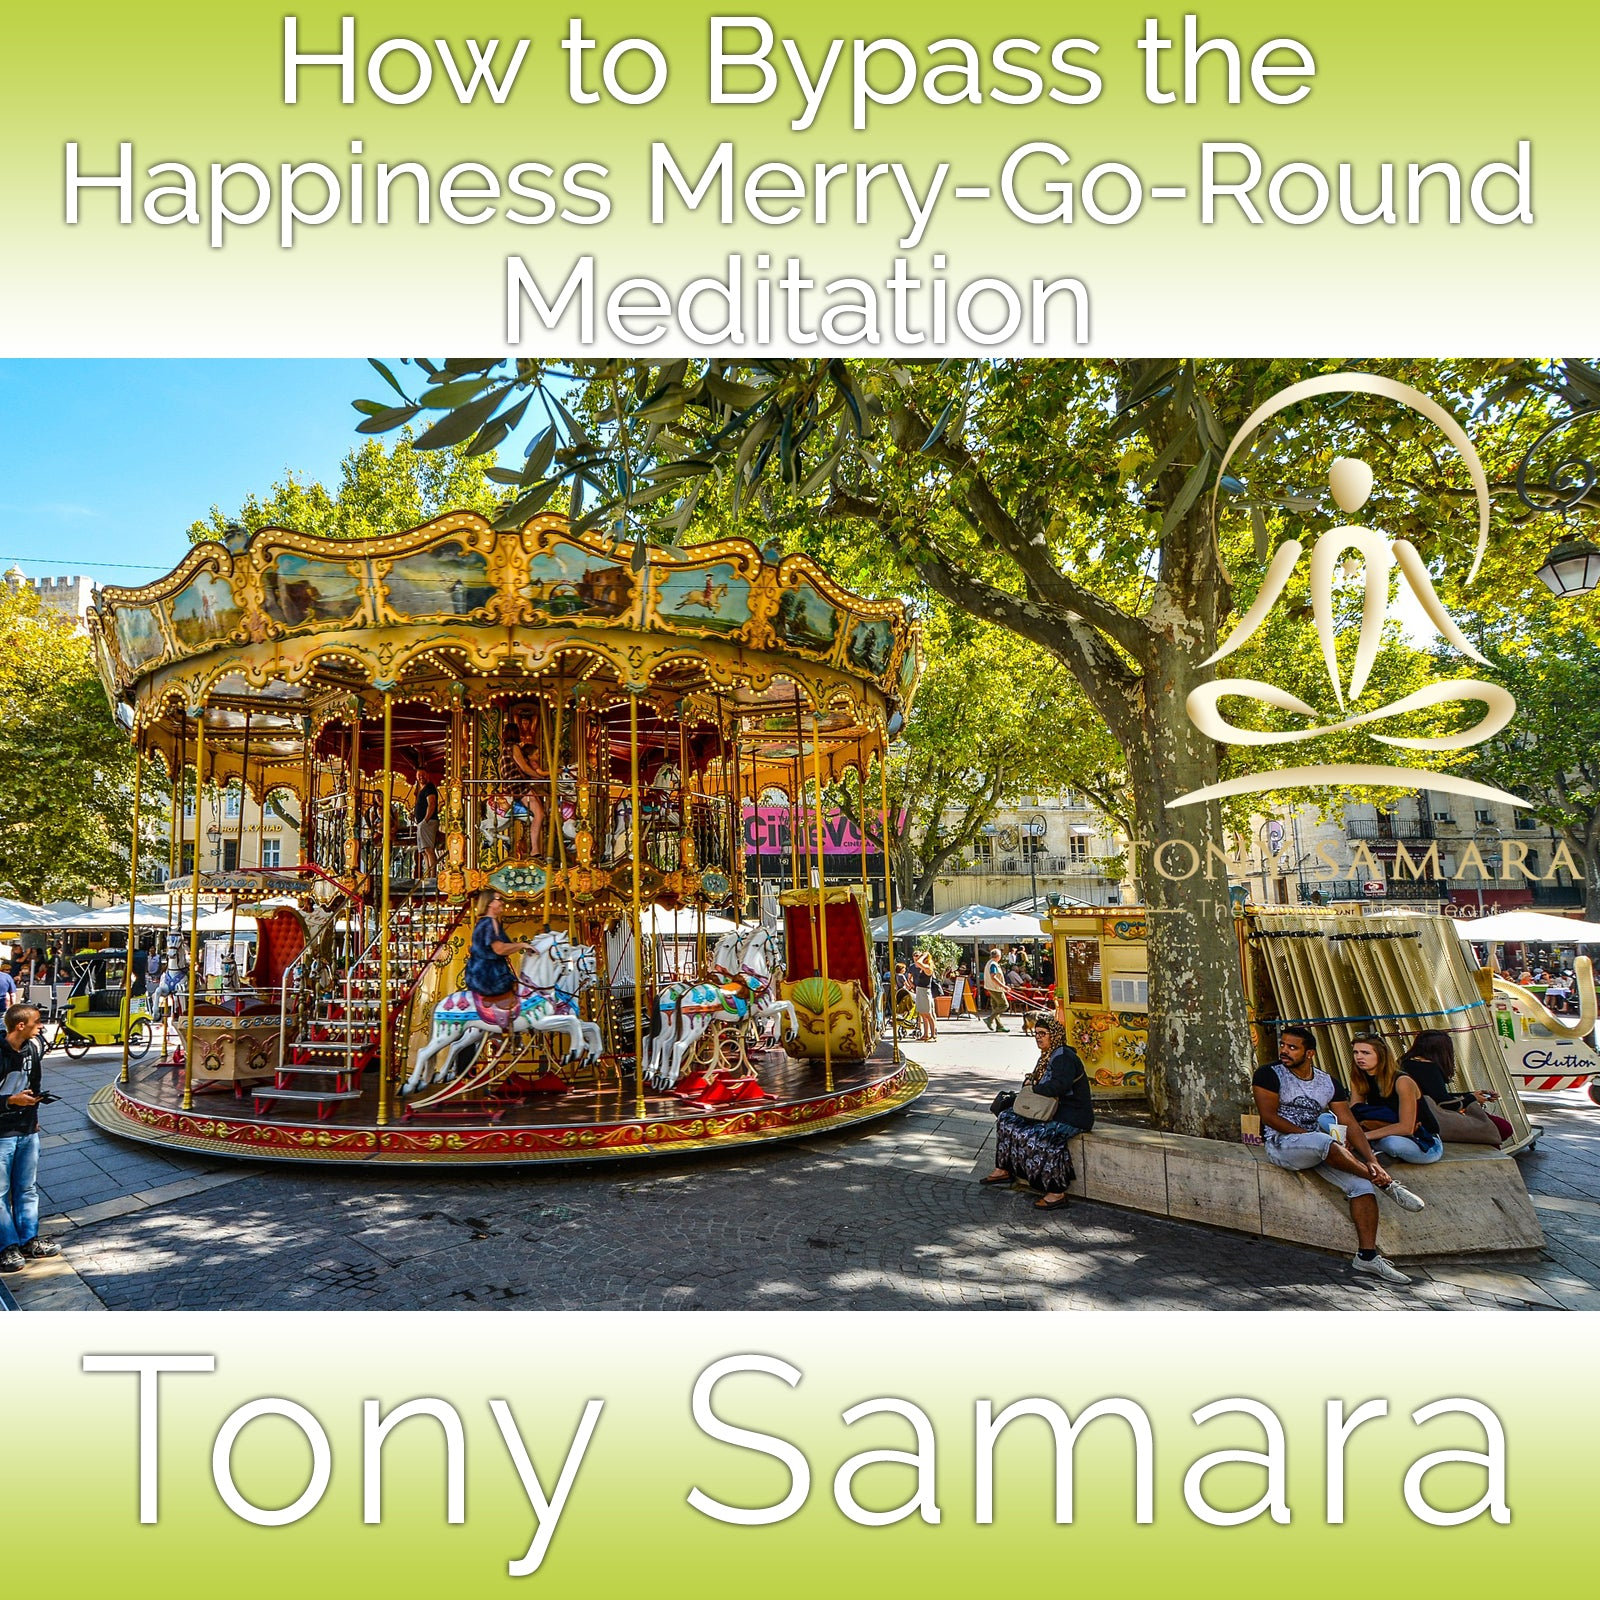 How to Bypass the Happiness Merry-Go-Round Meditation (MP3 Audio Download) - Tony Samara Meditation